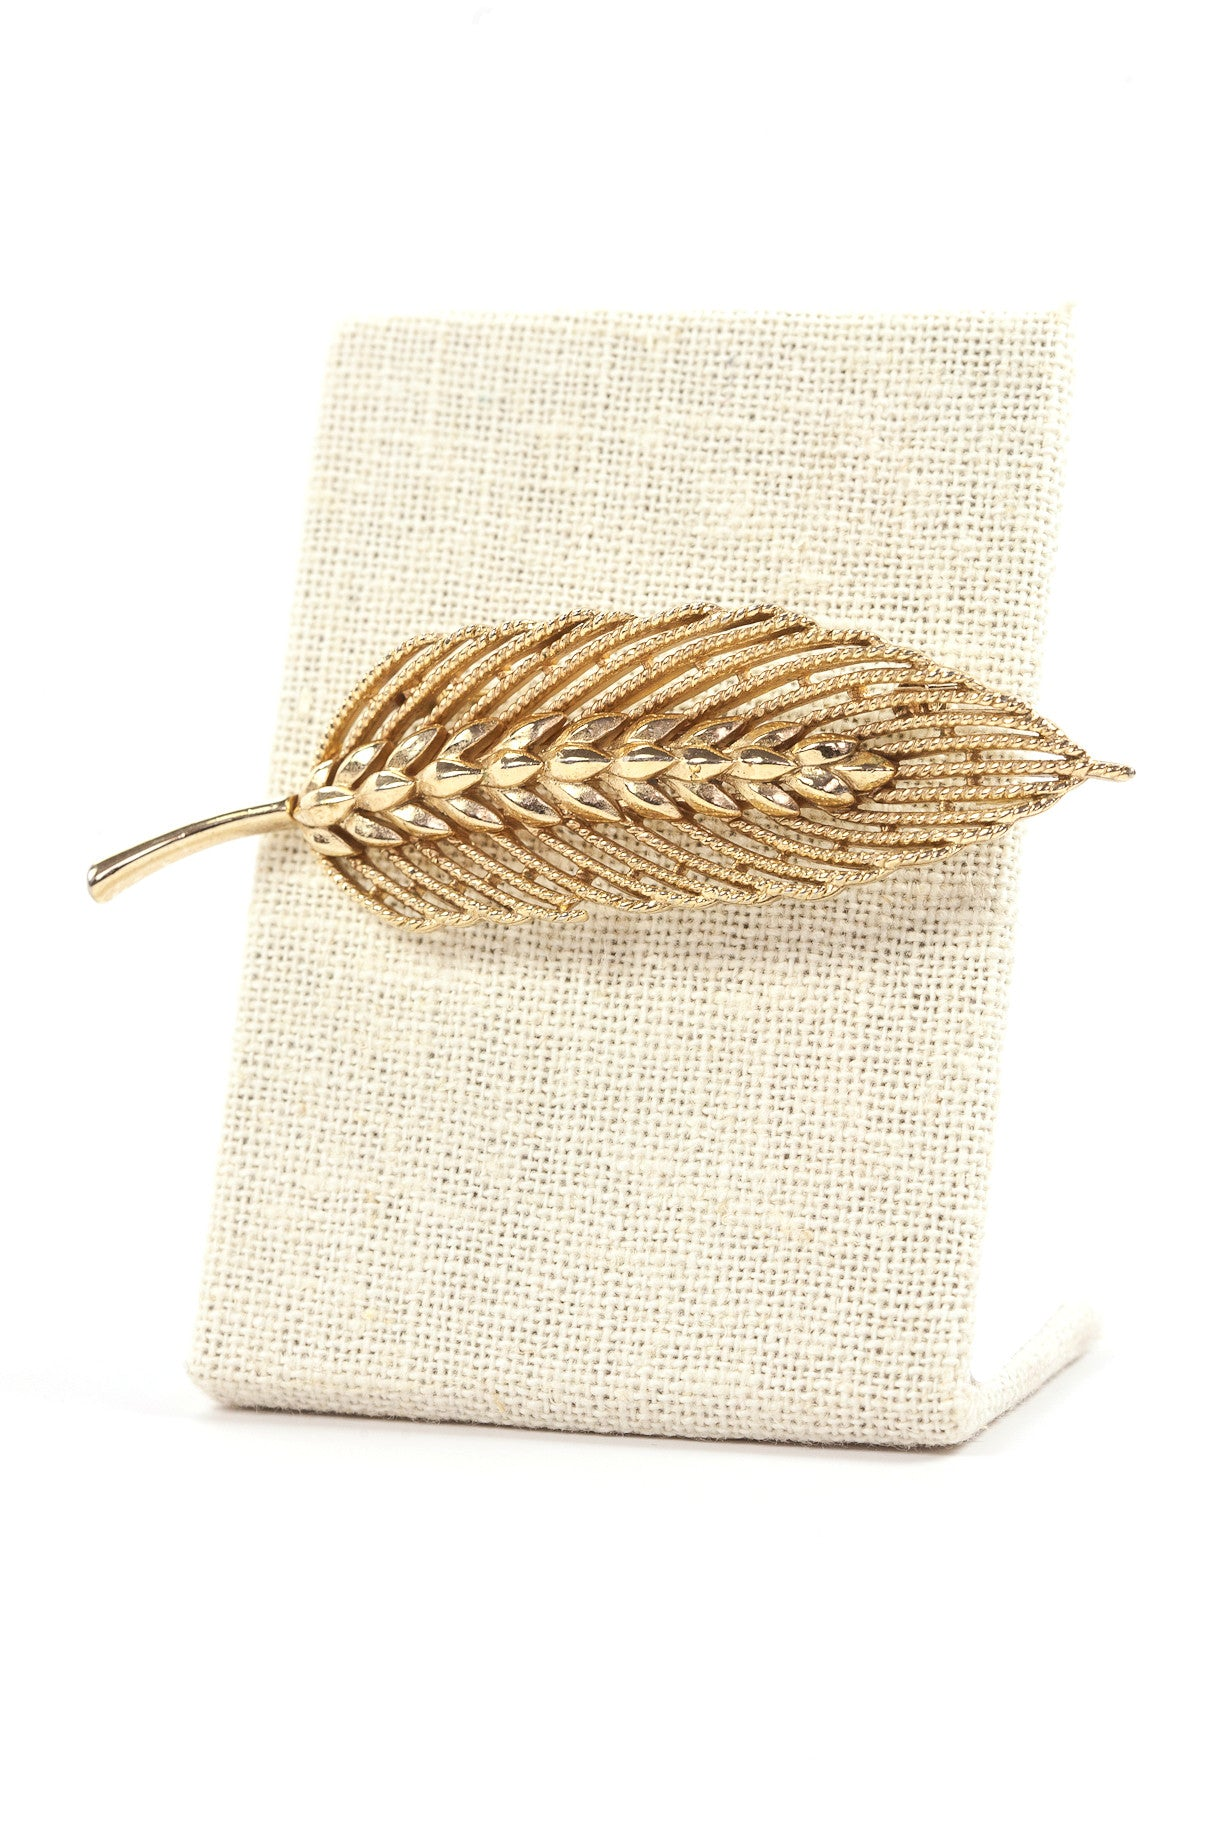 60's__Trifari__Feather Brooch